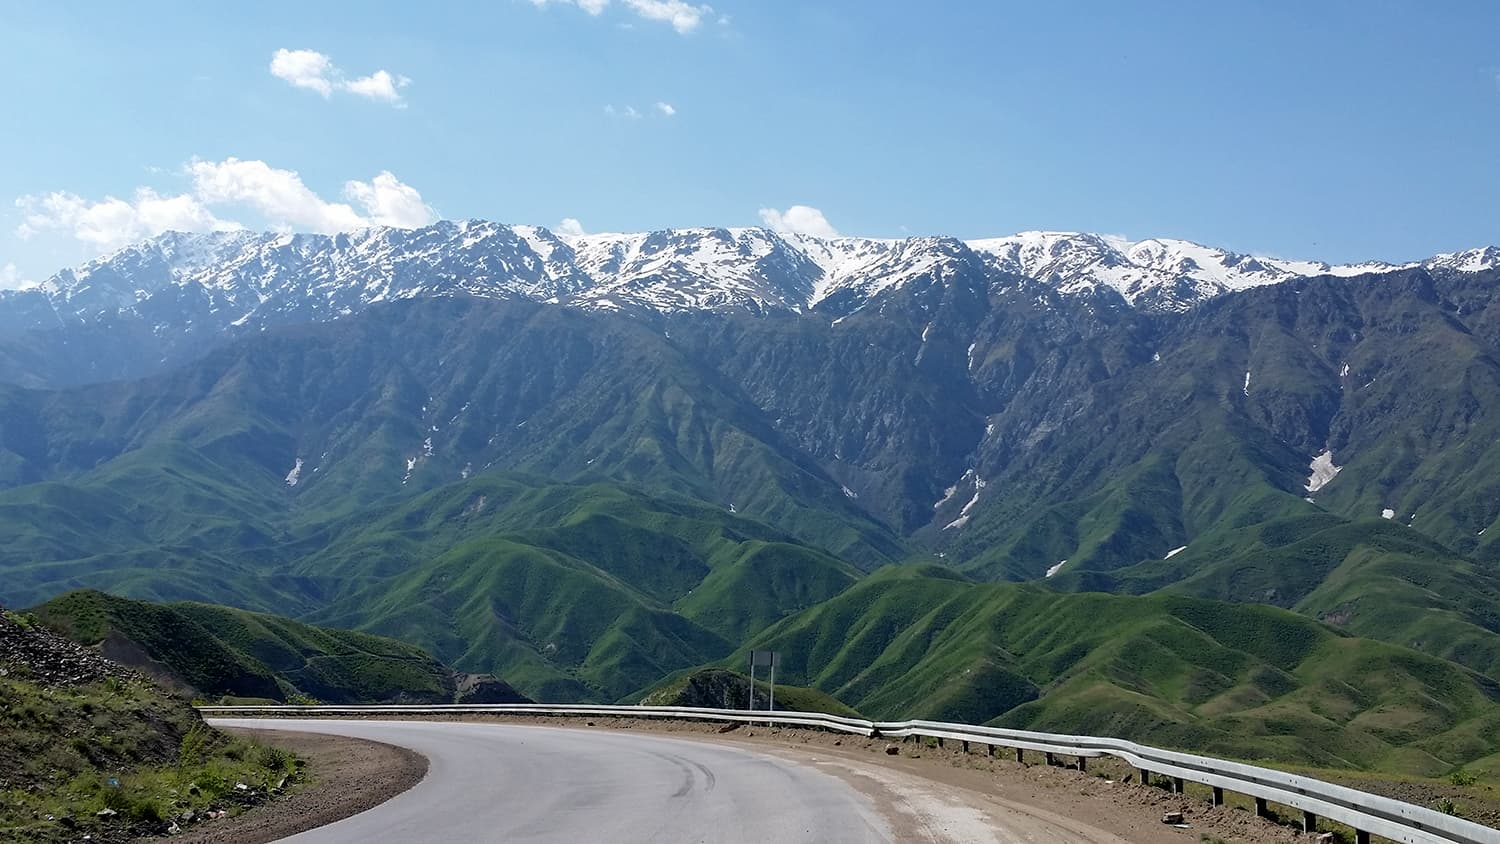 On the road in Kyrgyzstan.